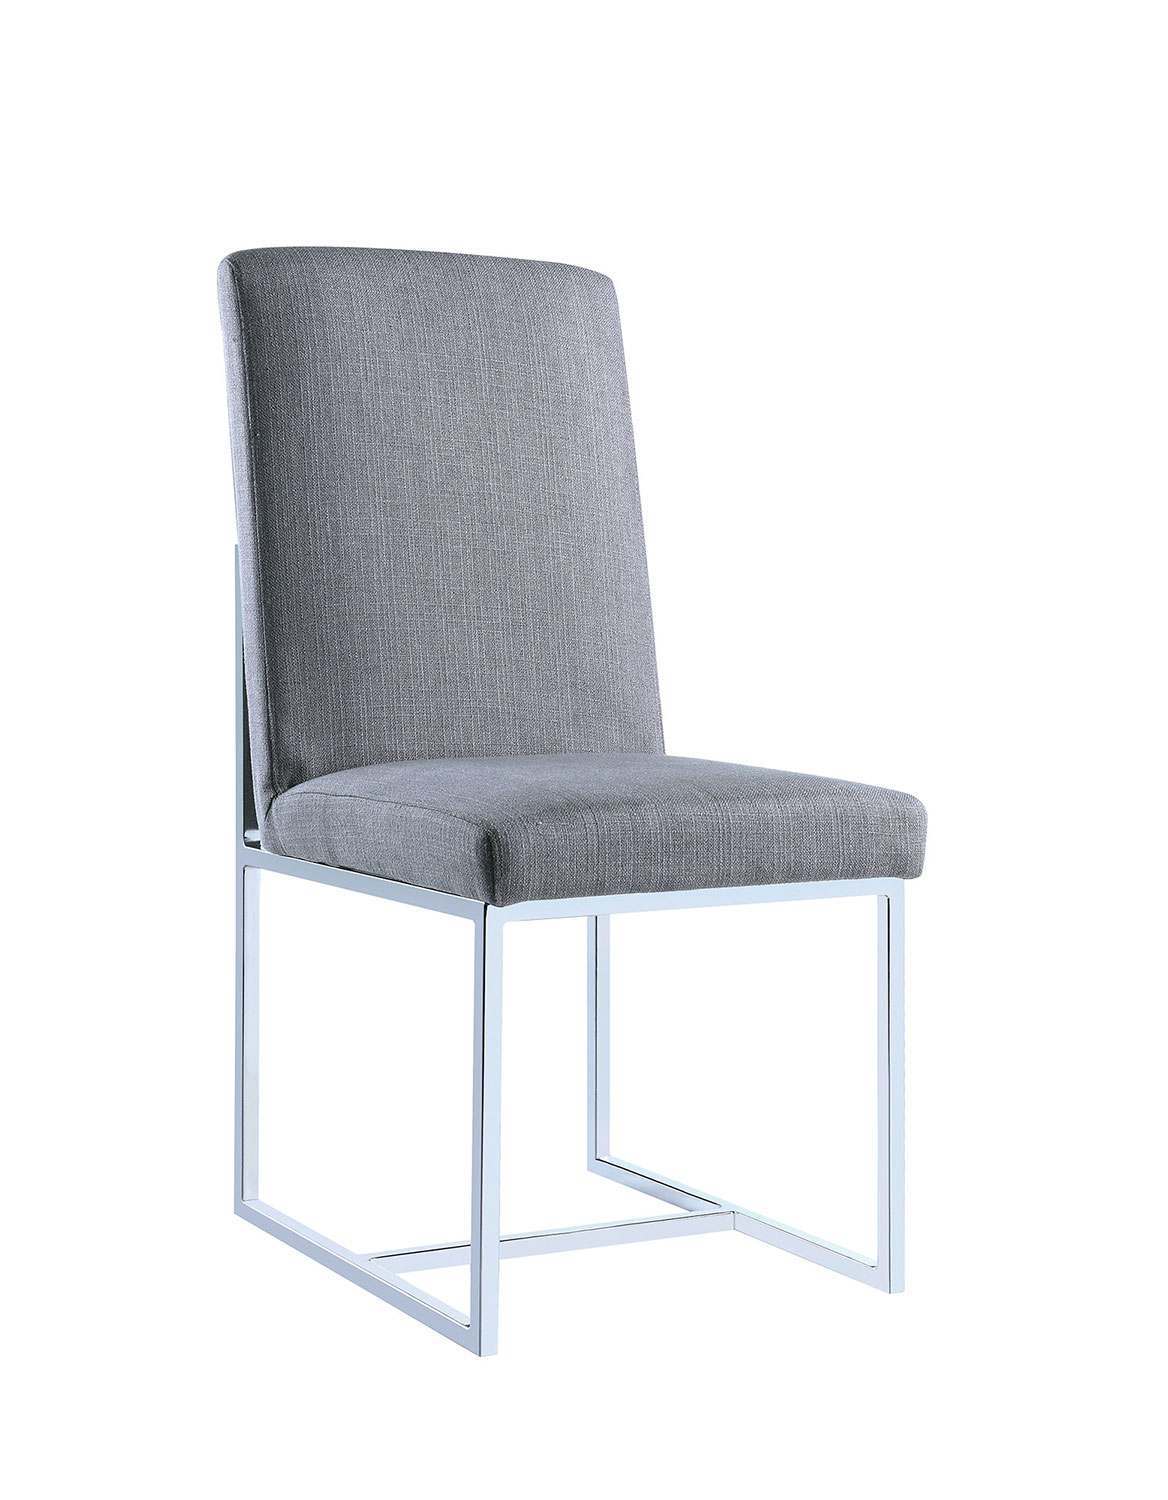 Coaster 107143 Side Chair - Grey